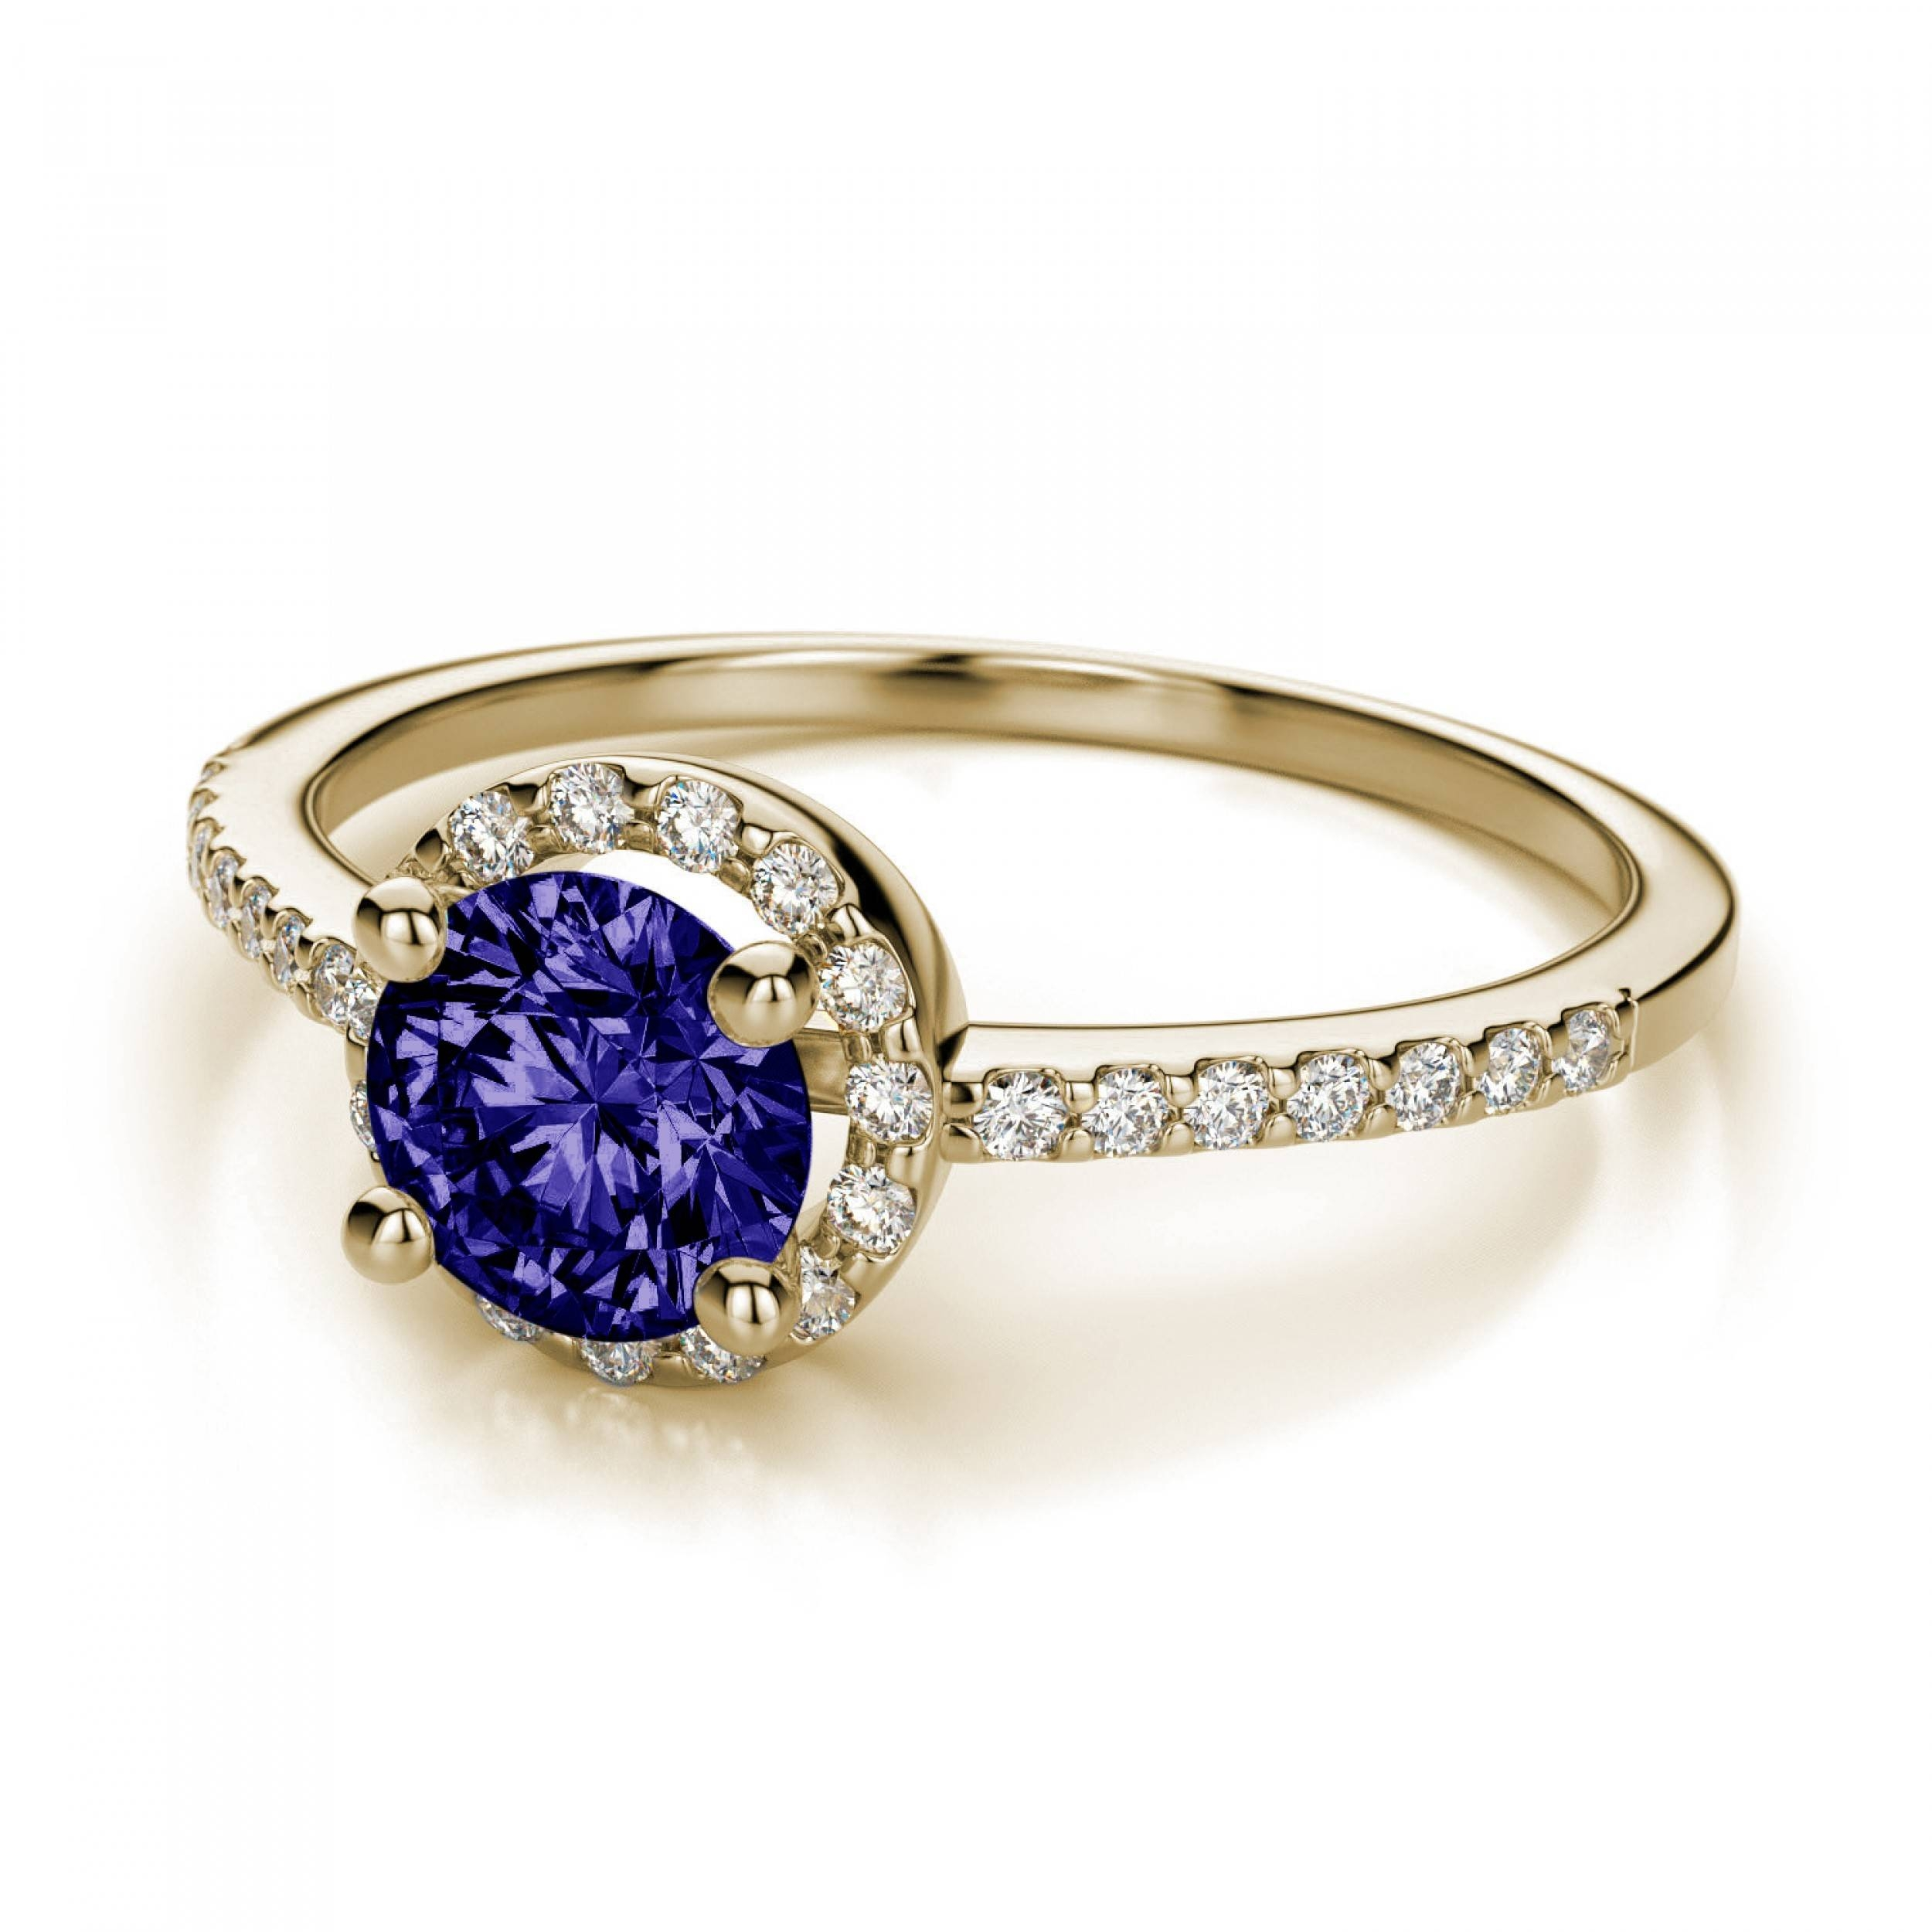 Halo Diamond And 5Mm Tanzanite Engagement Ring In 14K Yellow Gold With Regard To Diamond Tanzanite Engagement Rings (View 8 of 15)